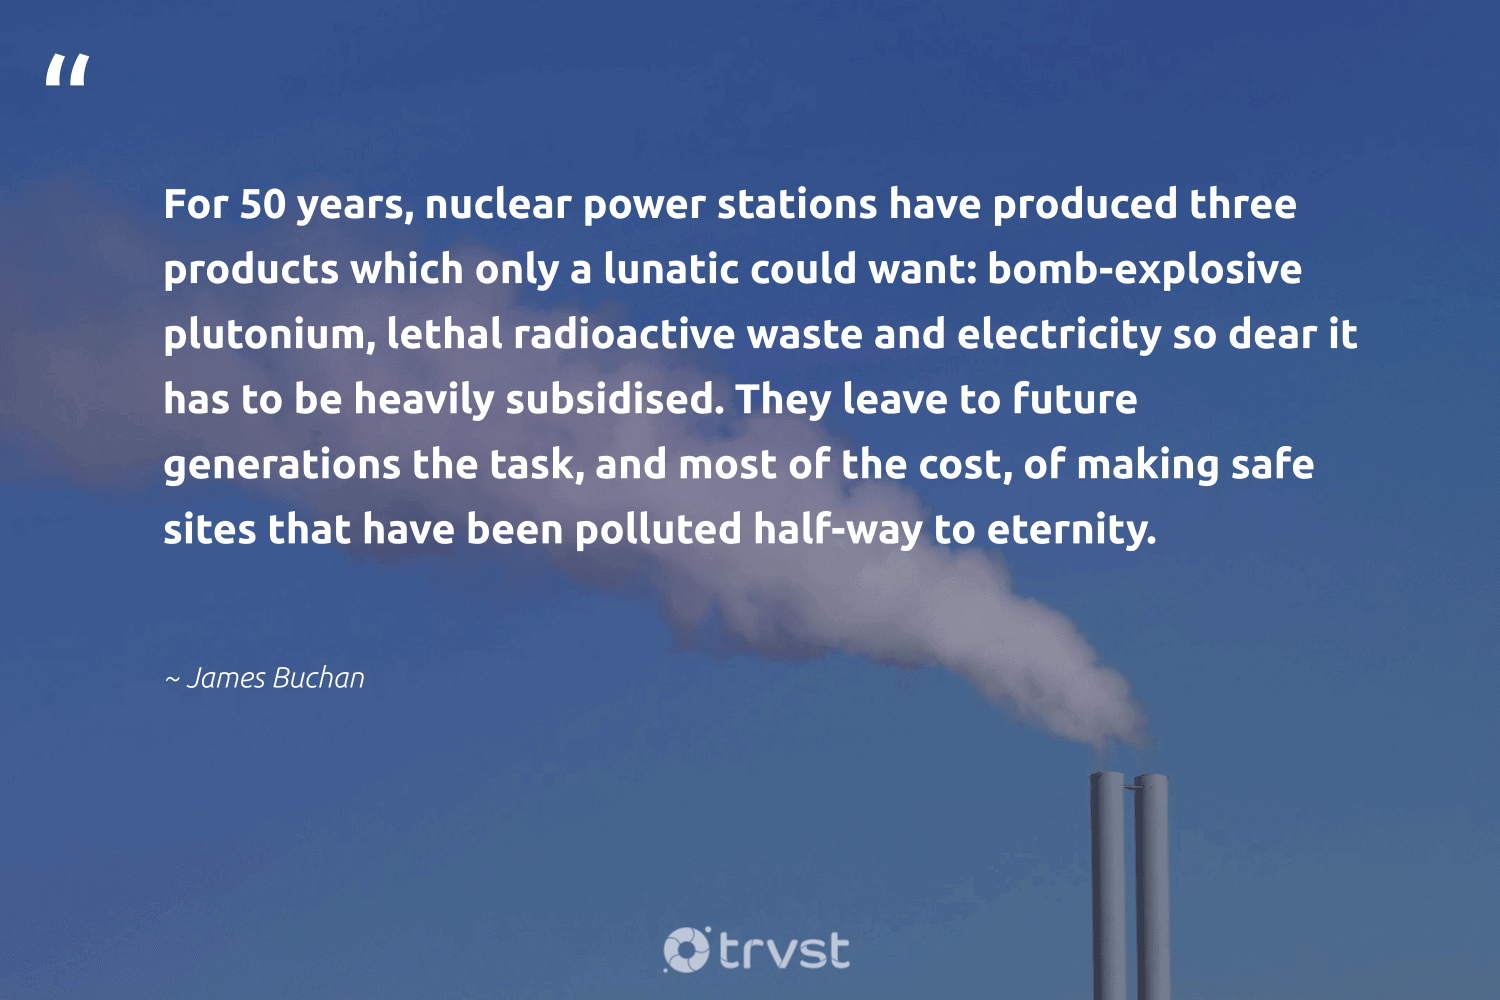 """""""For 50 years, nuclear power stations have produced three products which only a lunatic could want: bomb-explosive plutonium, lethal radioactive waste and electricity so dear it has to be heavily subsidised. They leave to future generations the task, and most of the cost, of making safe sites that have been polluted half-way to eternity.""""  - James Buchan #trvst #quotes #waste #climatechangeisreal #gogreen #climateaction #thinkgreen #globalwarming #takeaction #climatefight #socialimpact #ecoconscious"""